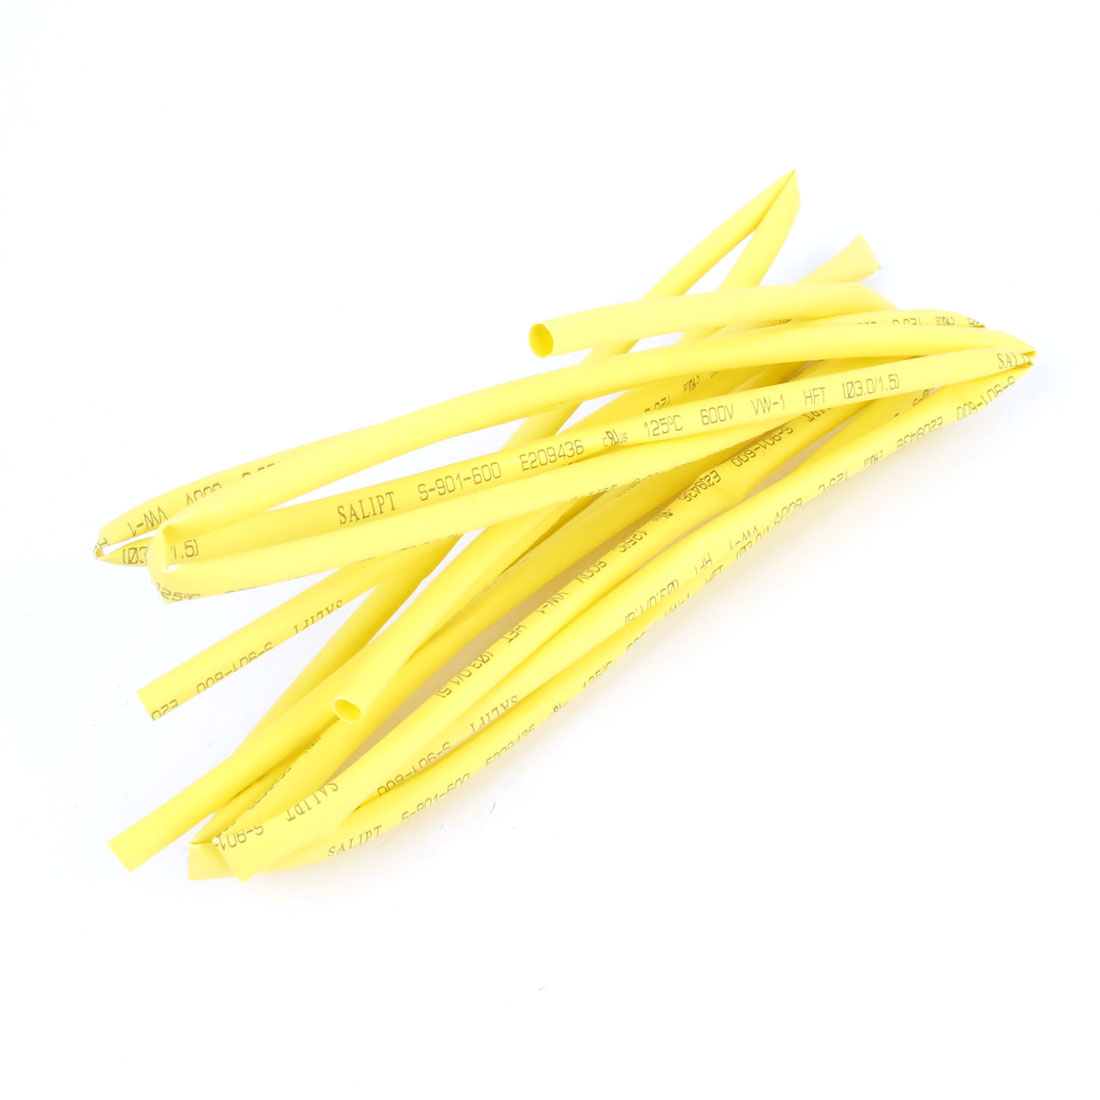 2pcs 600V Ratio 2:1 3mm Dia Heat Shrinkable Tube 3.3ft 1m Yellow